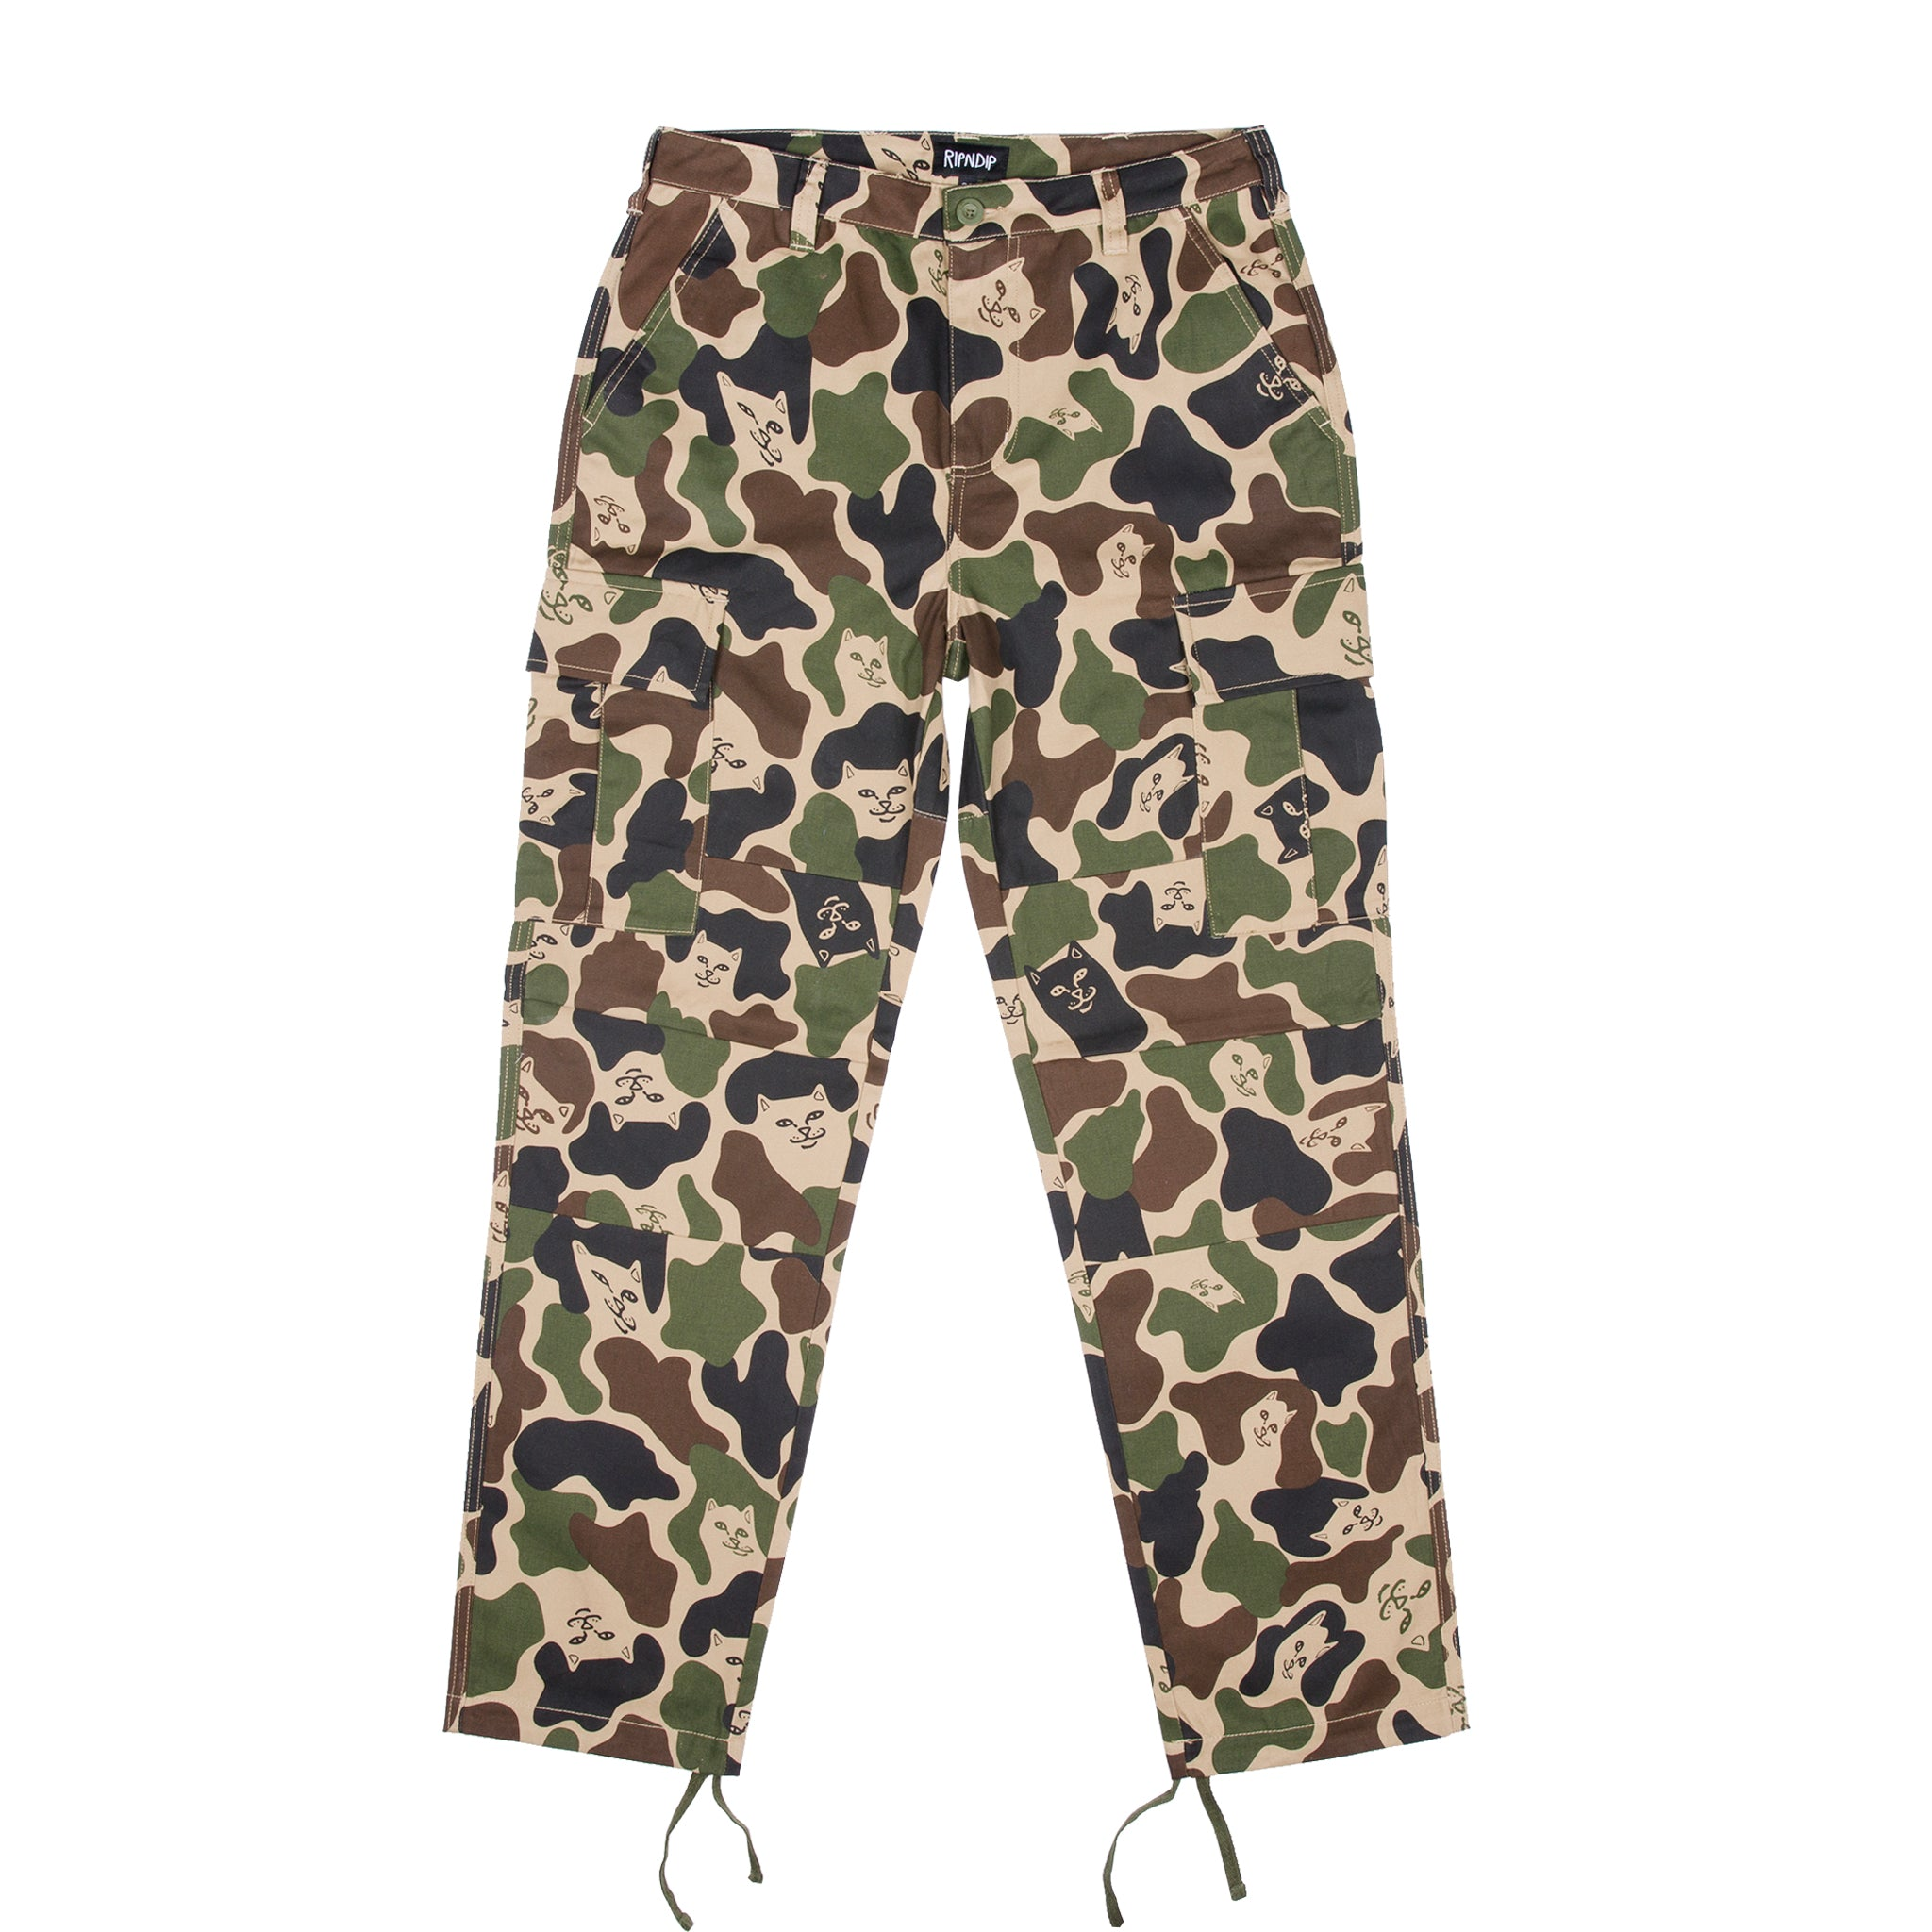 Nermal Camo Cargo Pants (Army Camo)